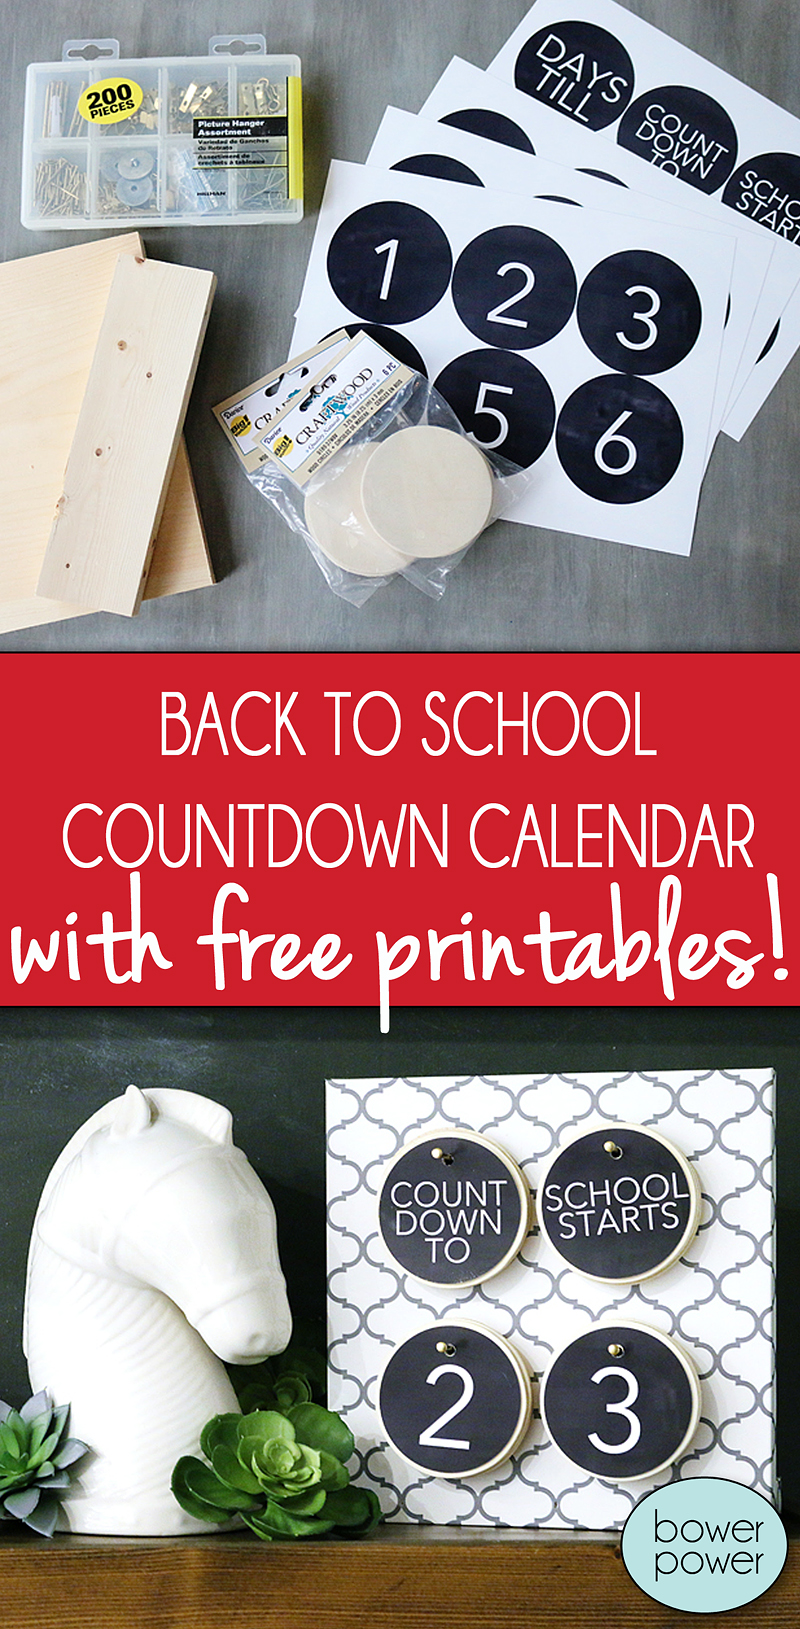 Back to school countdown calendar - Bower Power